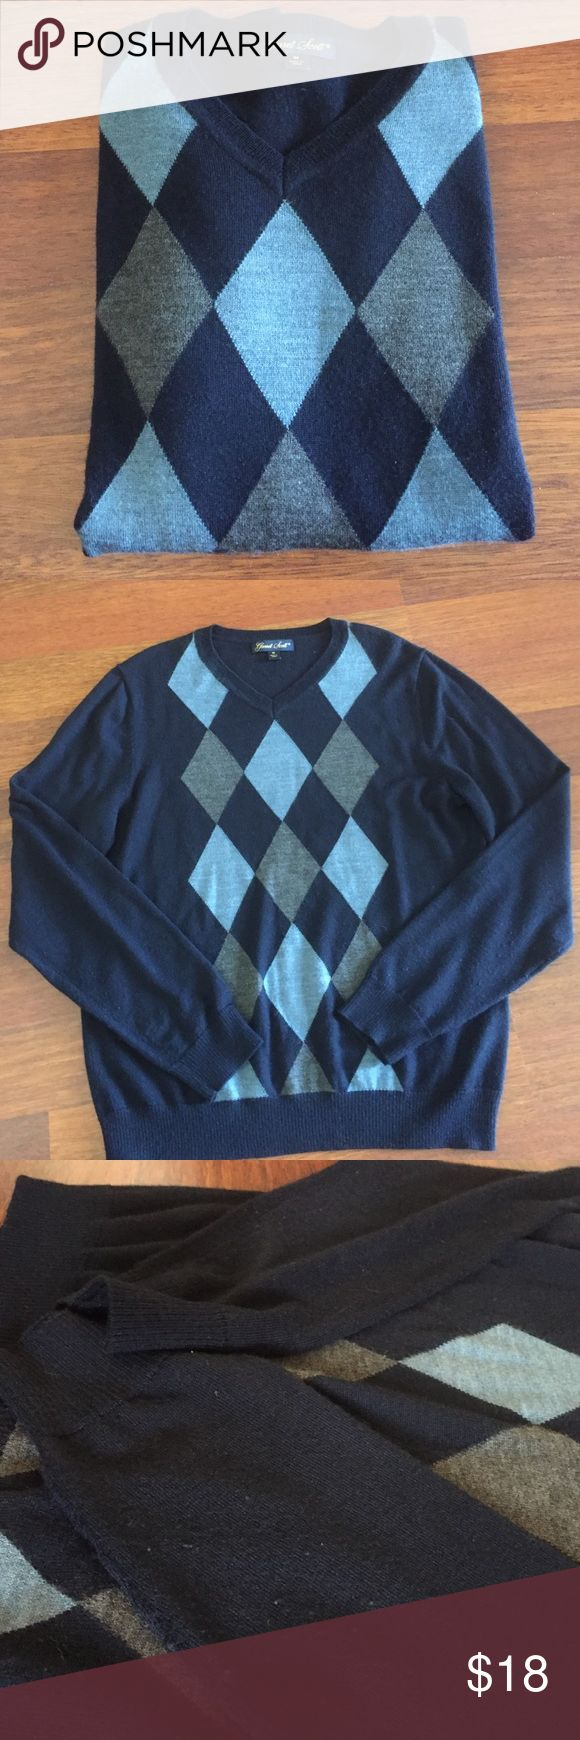 Garret Scott mens argyle sweater Garret Scott mens argyle sweater. merino wool and acrylic blend sweater. Navy with charcoal and blue argyle. Some pilling on sleeves otherwise great condition. Garret Scott Sweaters V-Neck